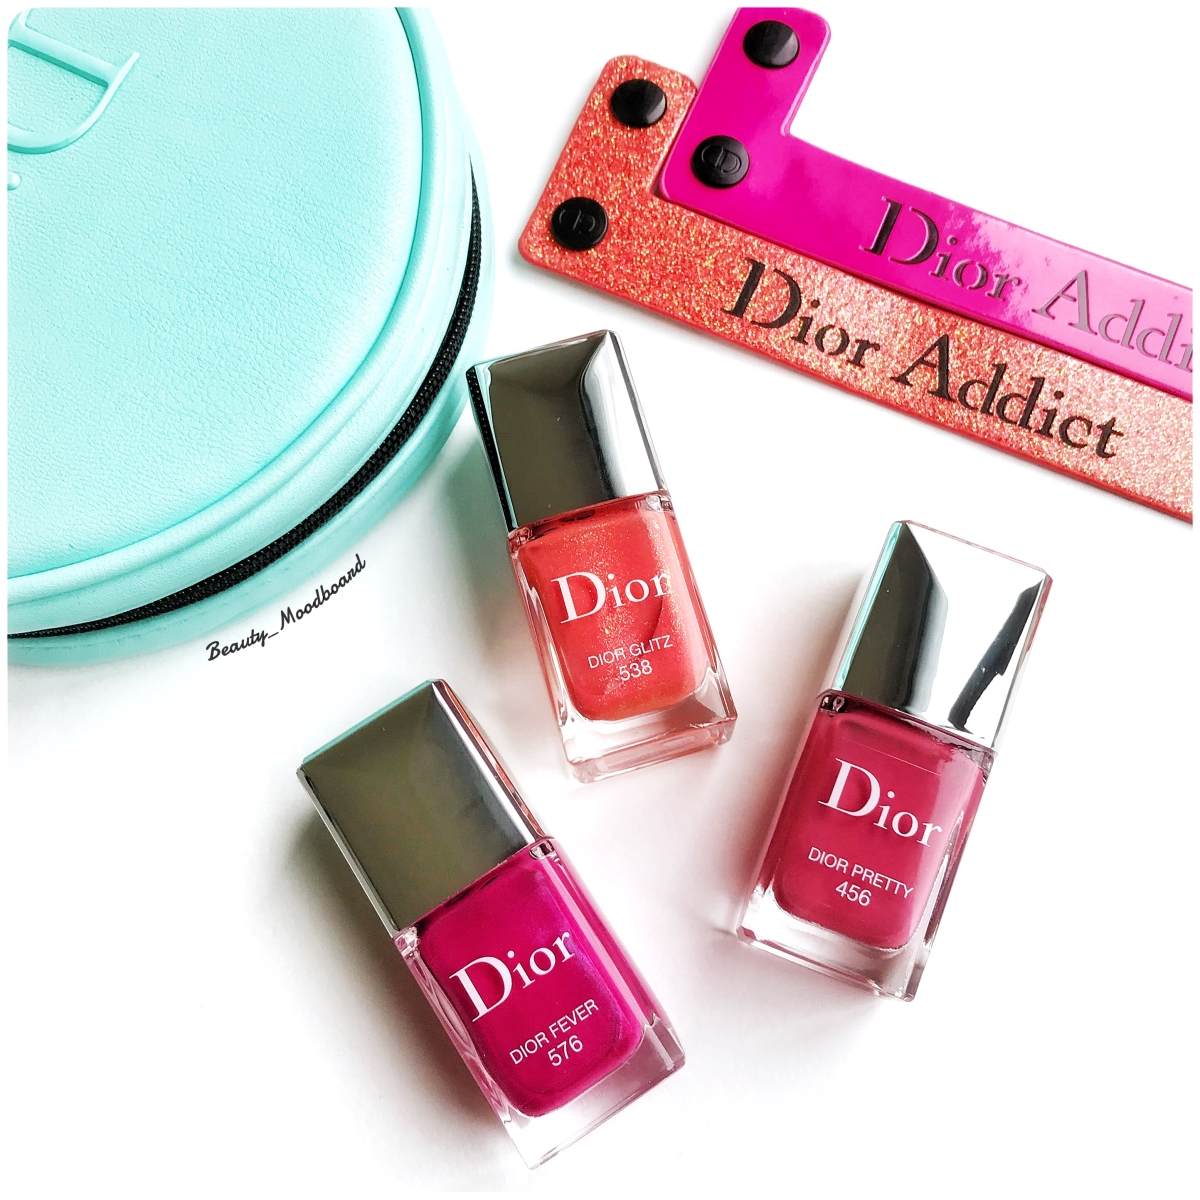 Dior Vernis Lacquer Collection 2018 : Dior Pretty 456 ; Dior Glitz 538 ; Dior Fever 576